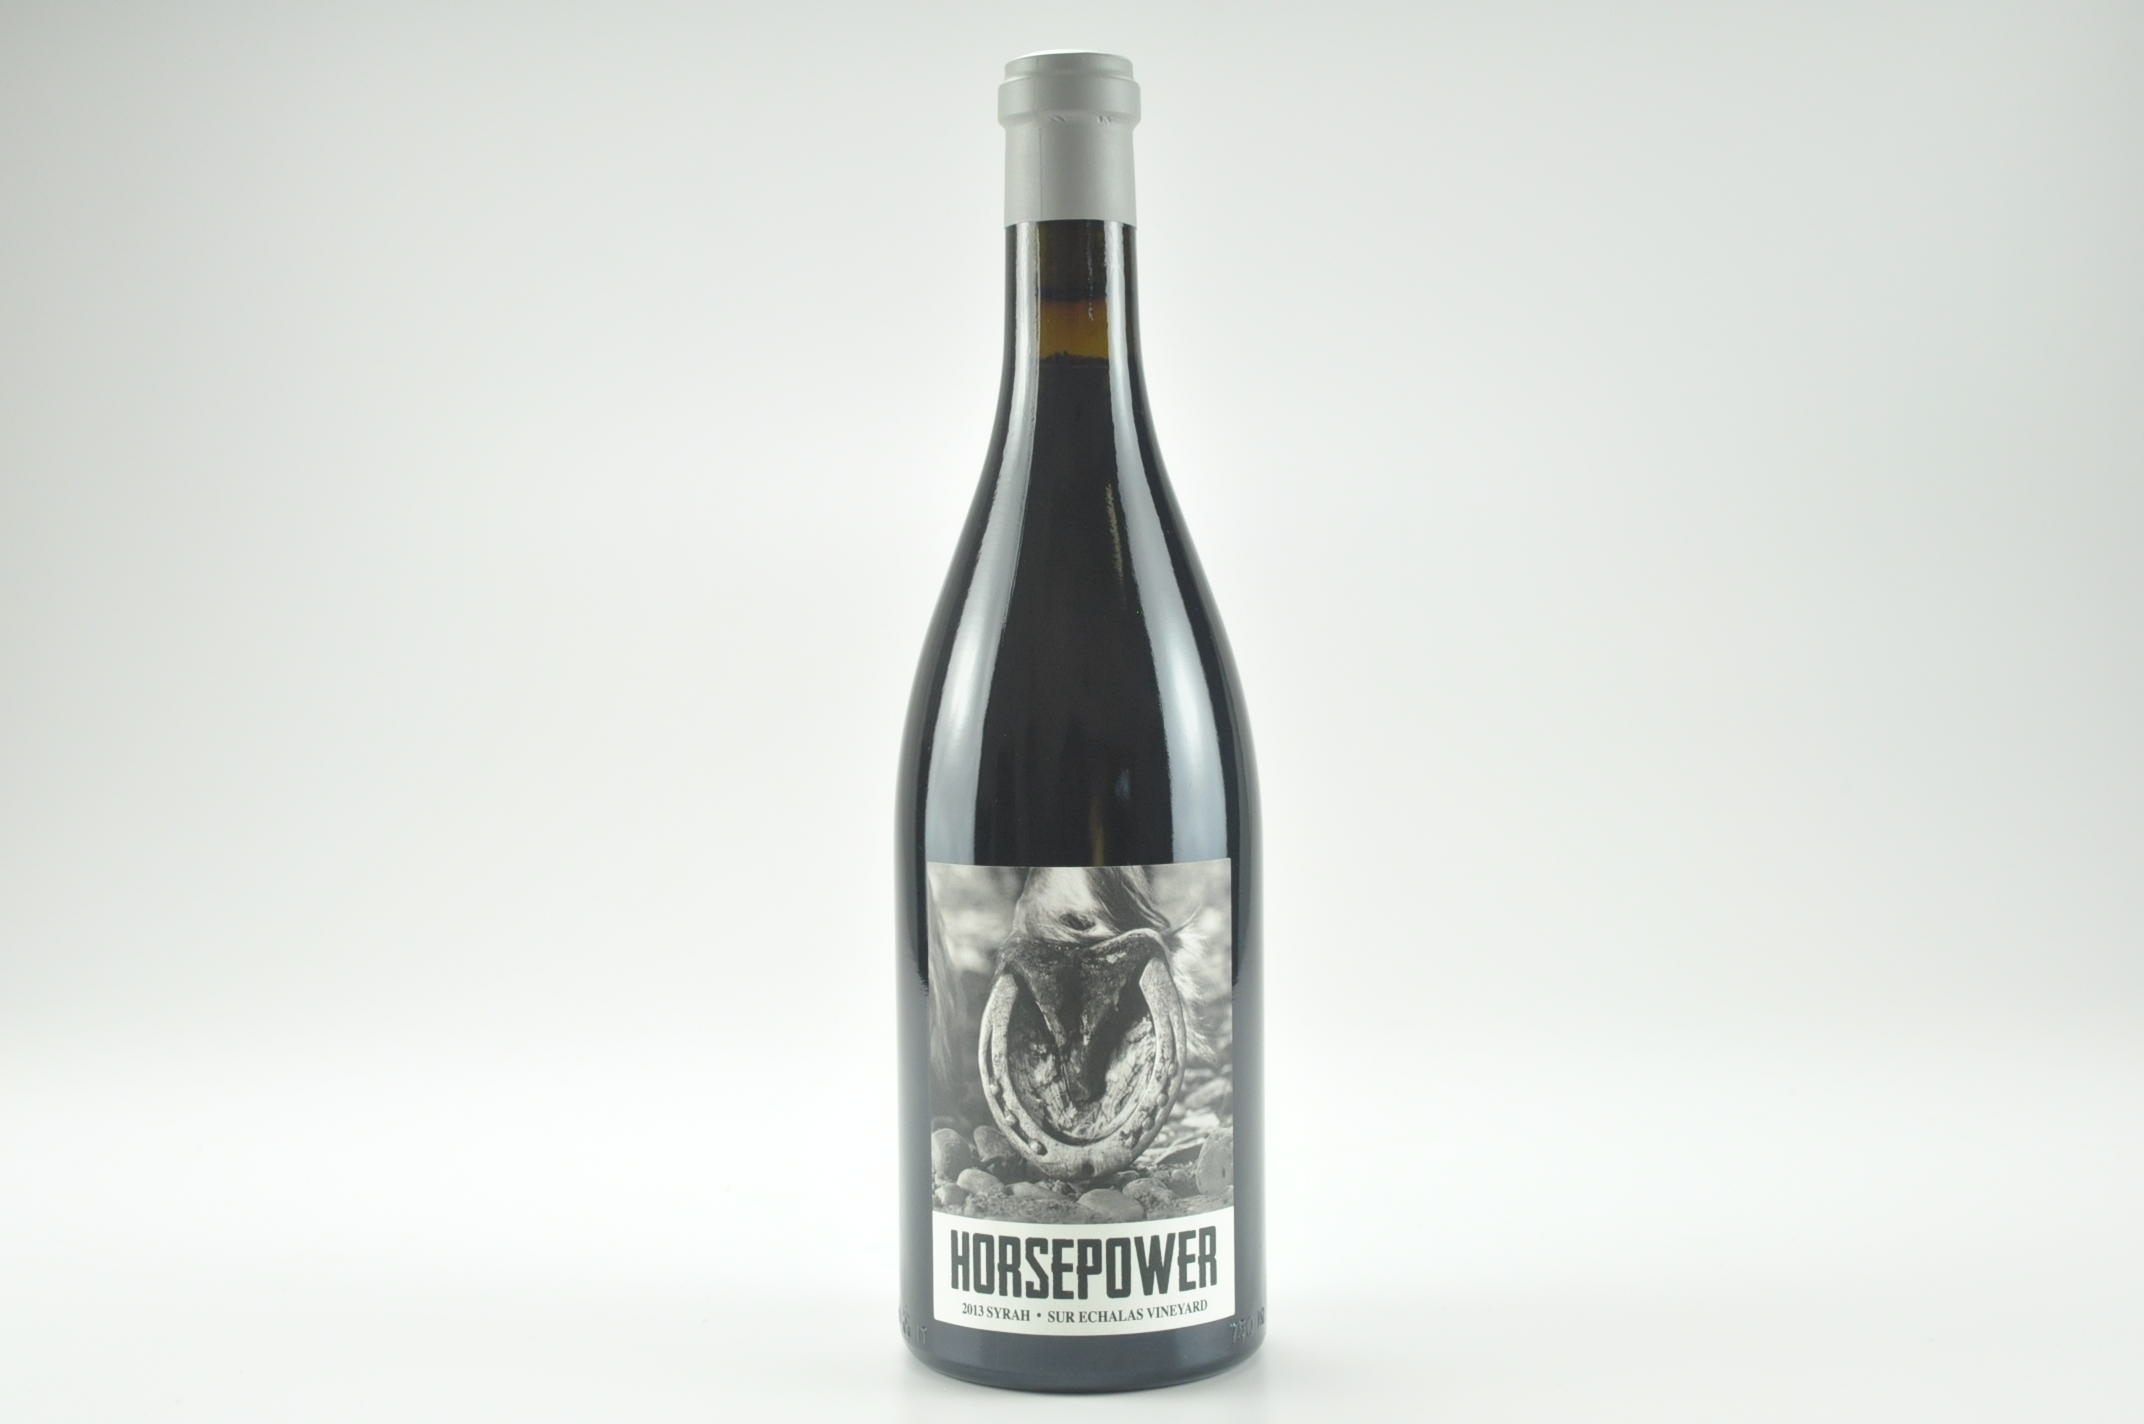 2013 Horsepower Syrah Sur Echalas Vineyard, Walla Walla Valley RP--95